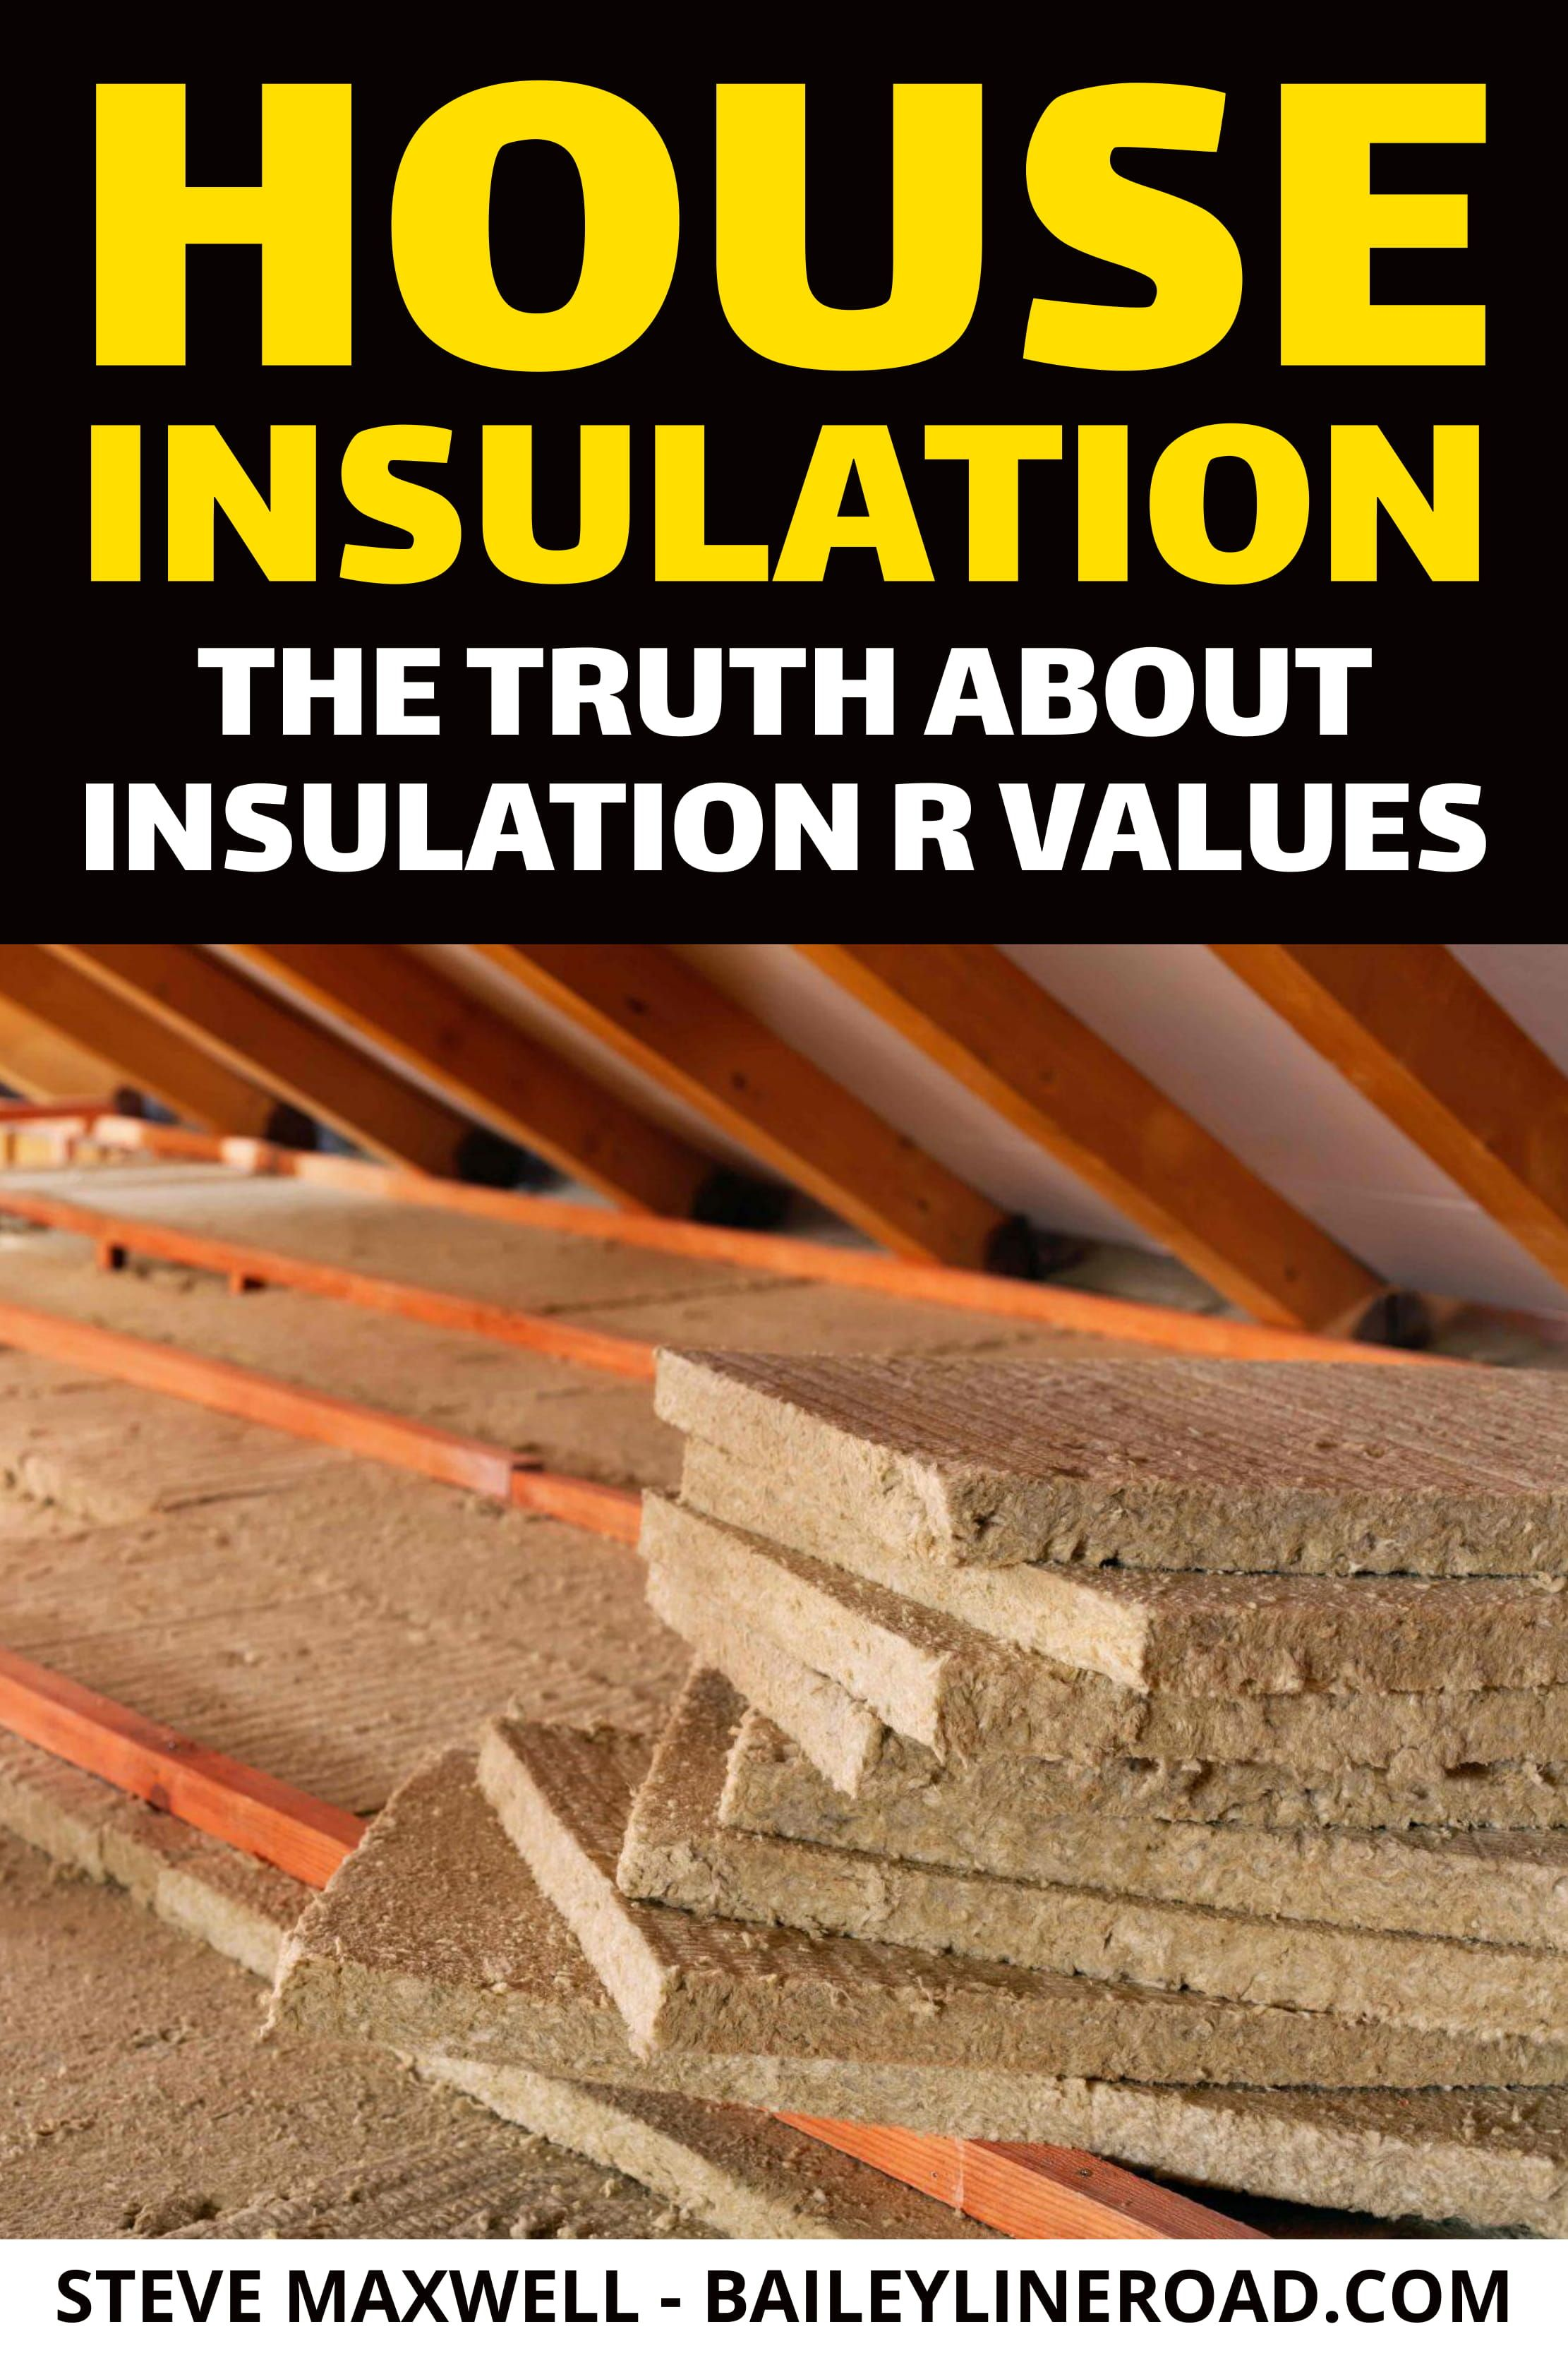 House insulation the truth about insulation r values